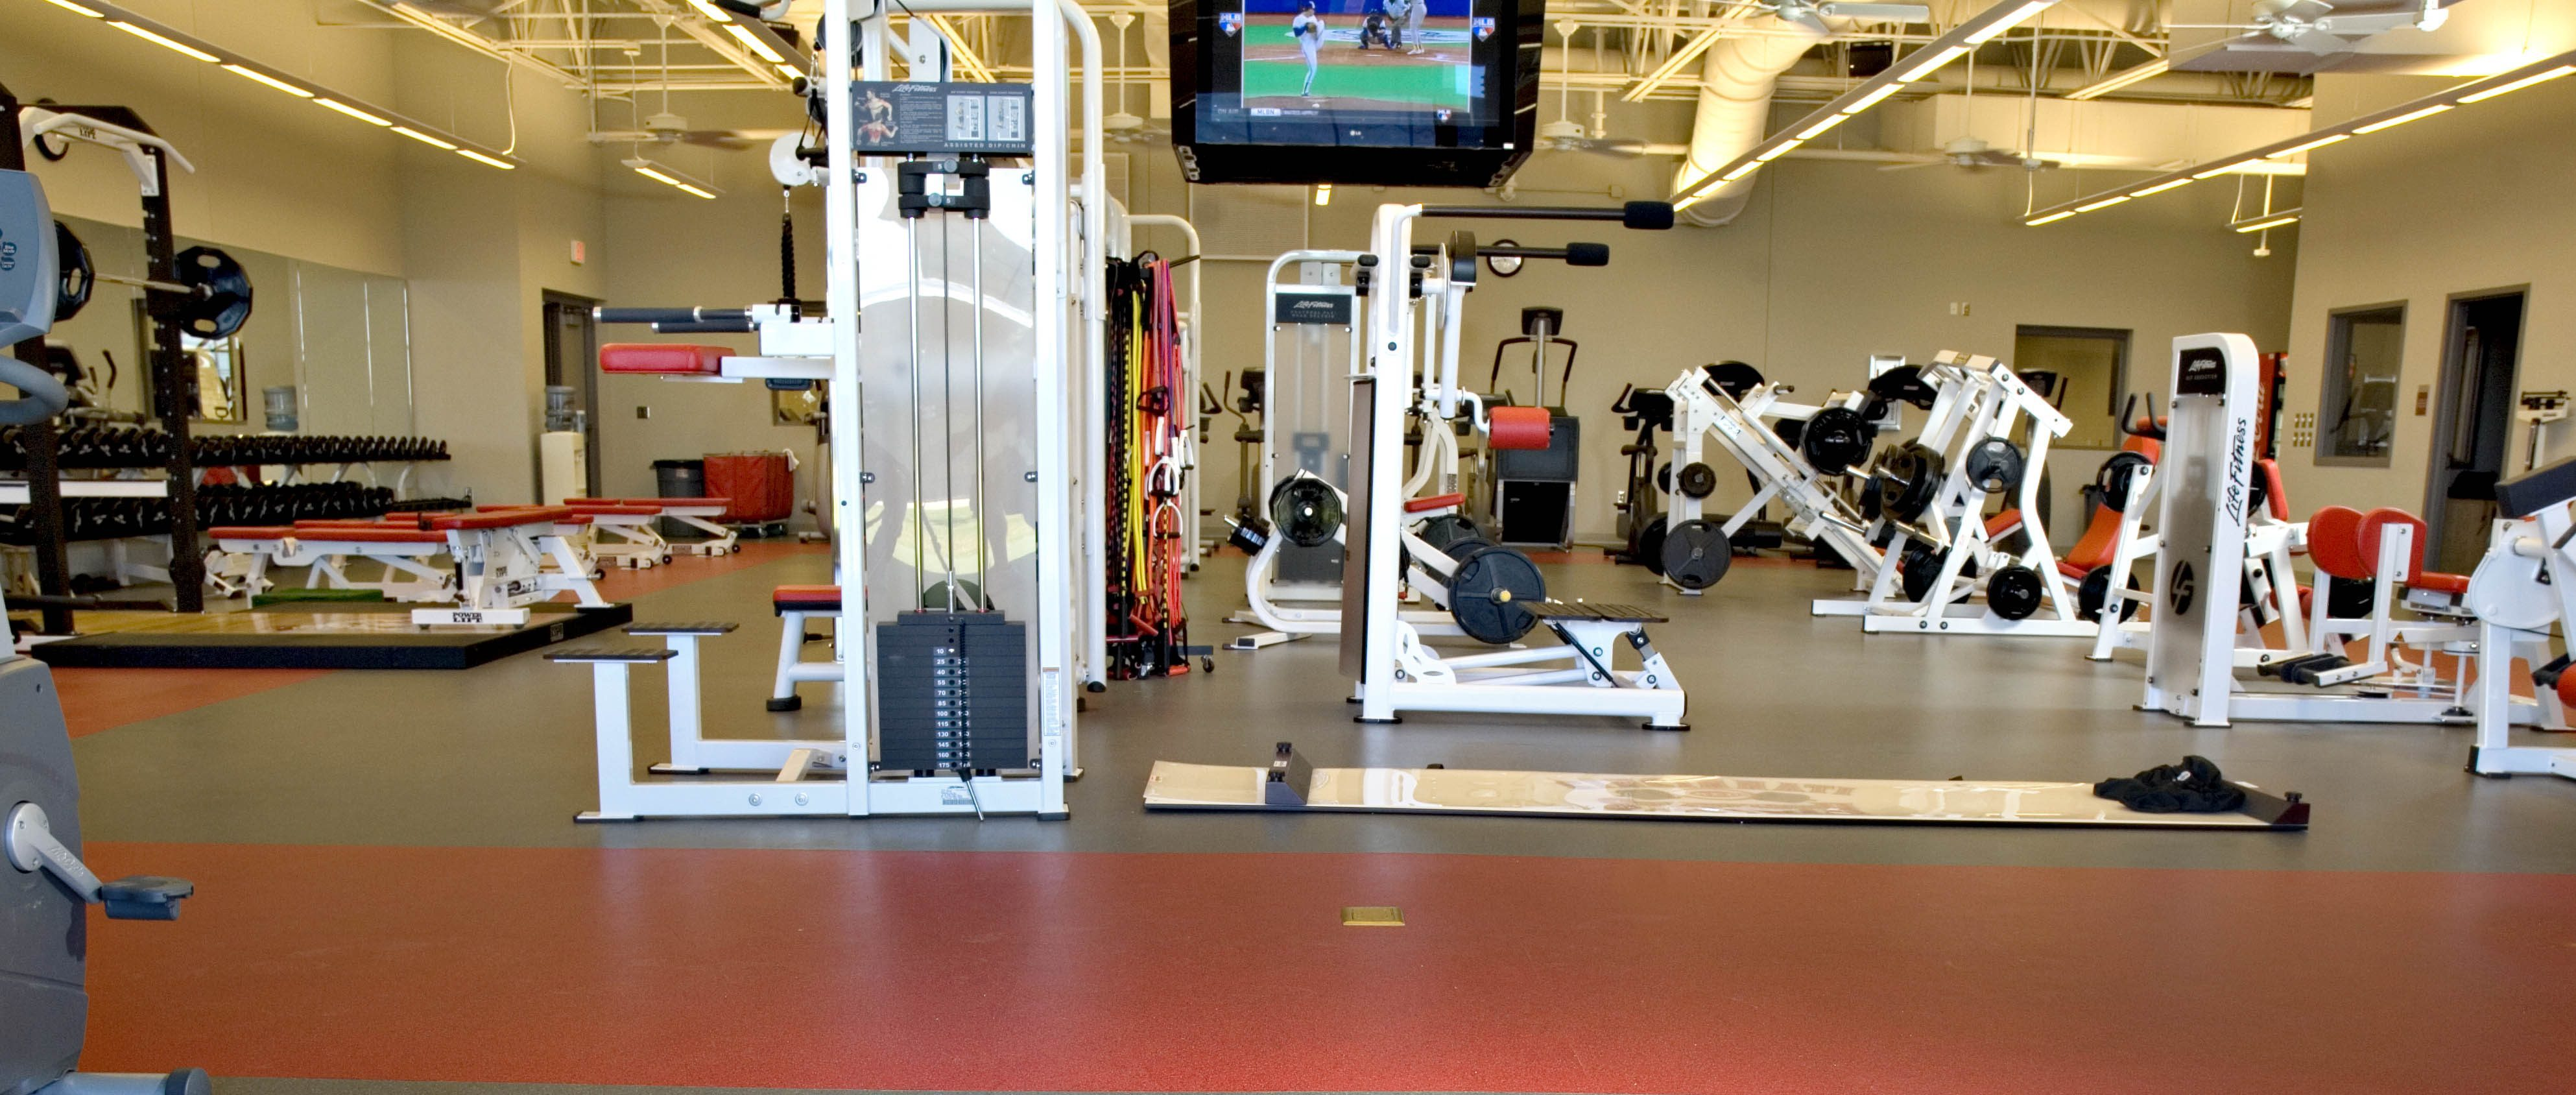 Exercise room flooring turf basement workout room flooring workout